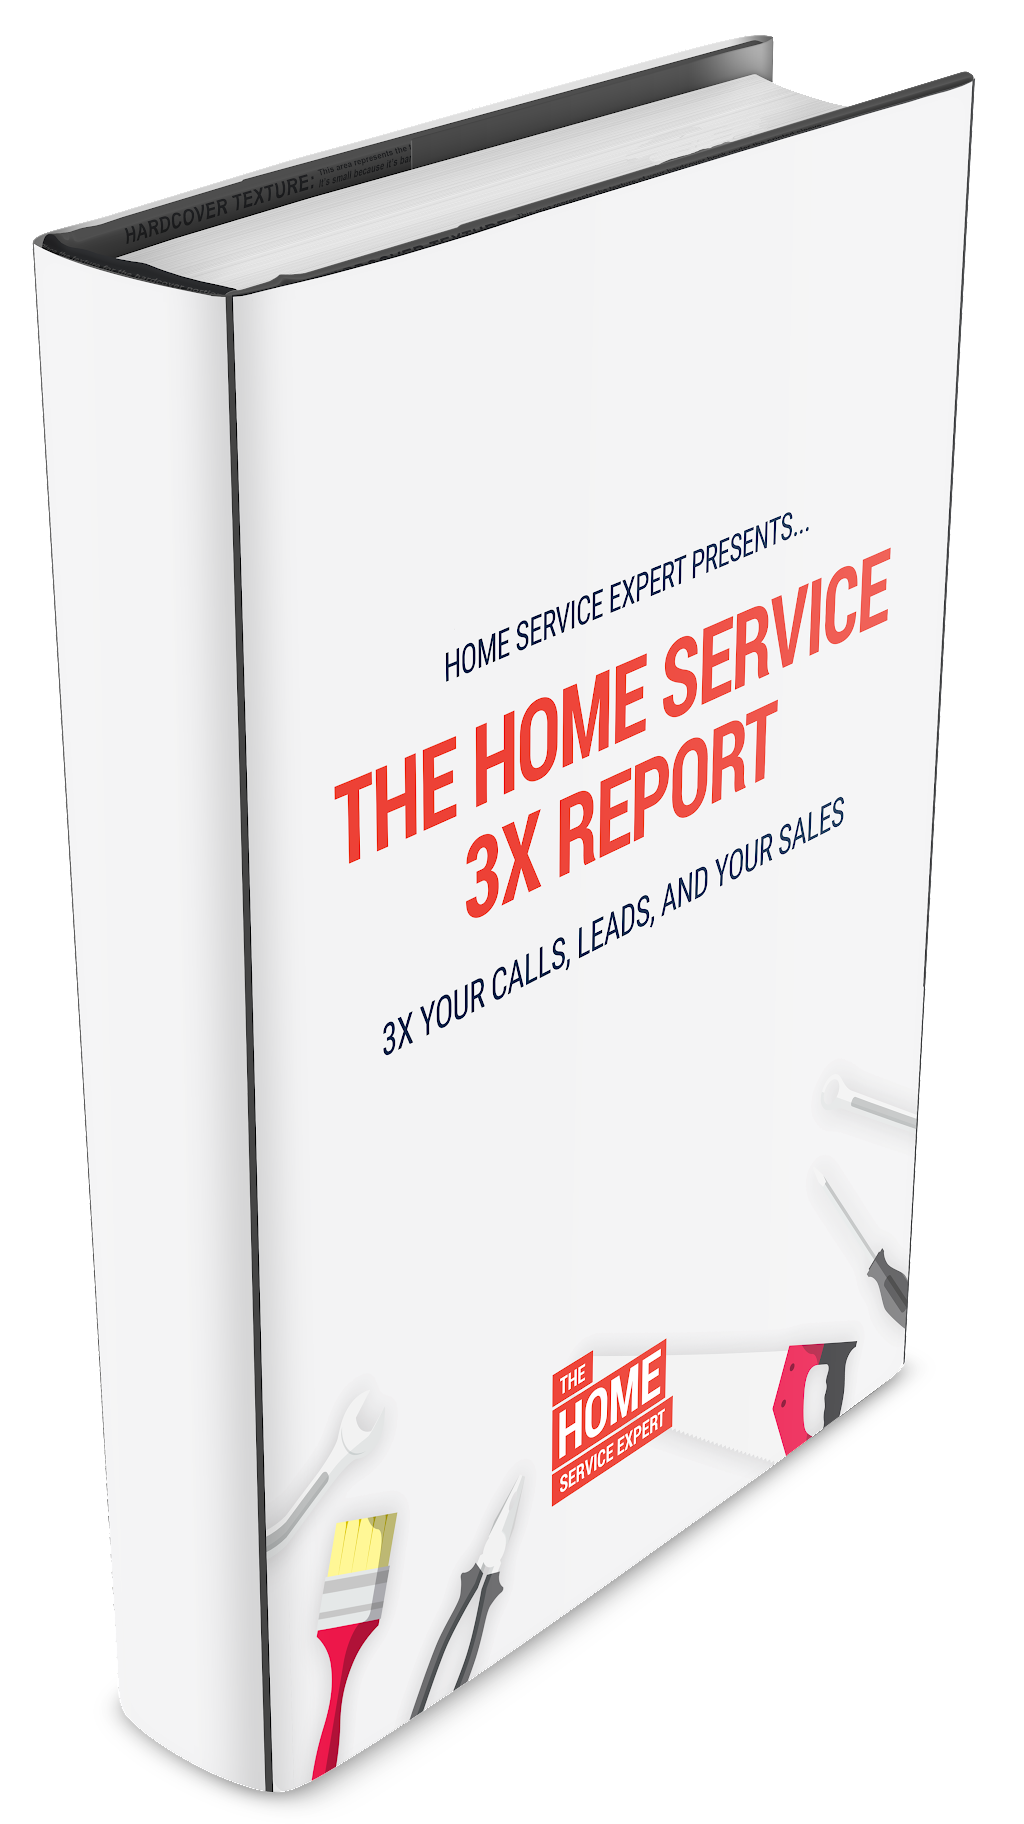 How To 3x Your Calls, Leads, Sales In 90 Days [Free Guide]